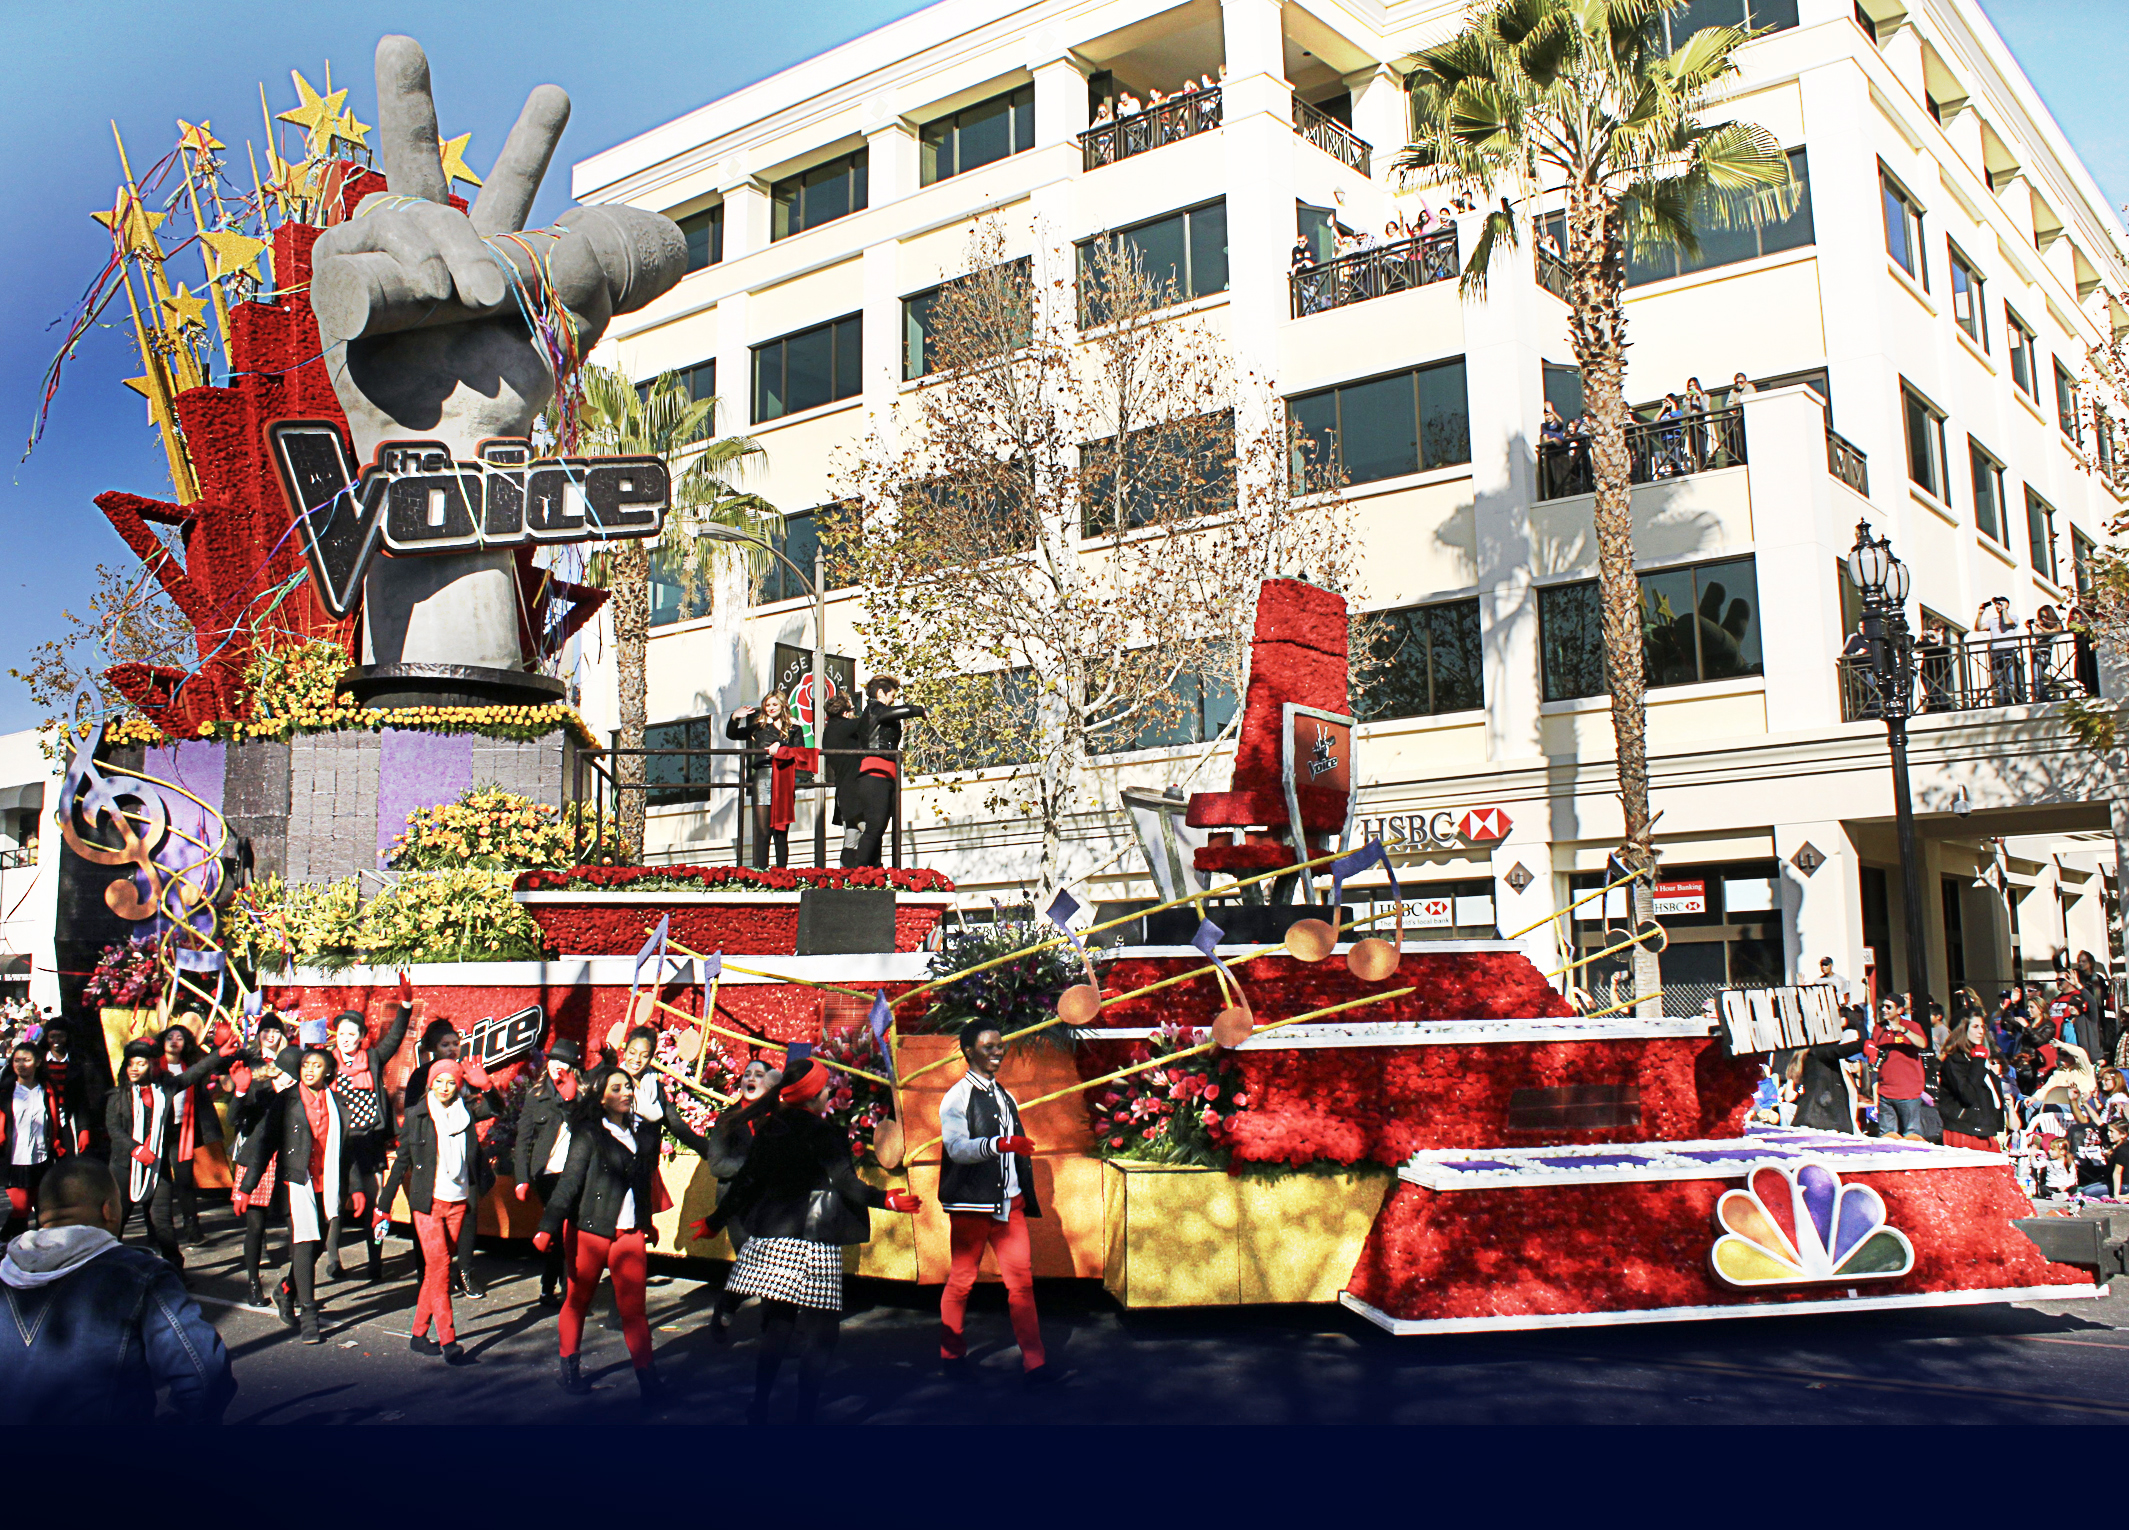 roseparade winning entries-the voice 4.jpg